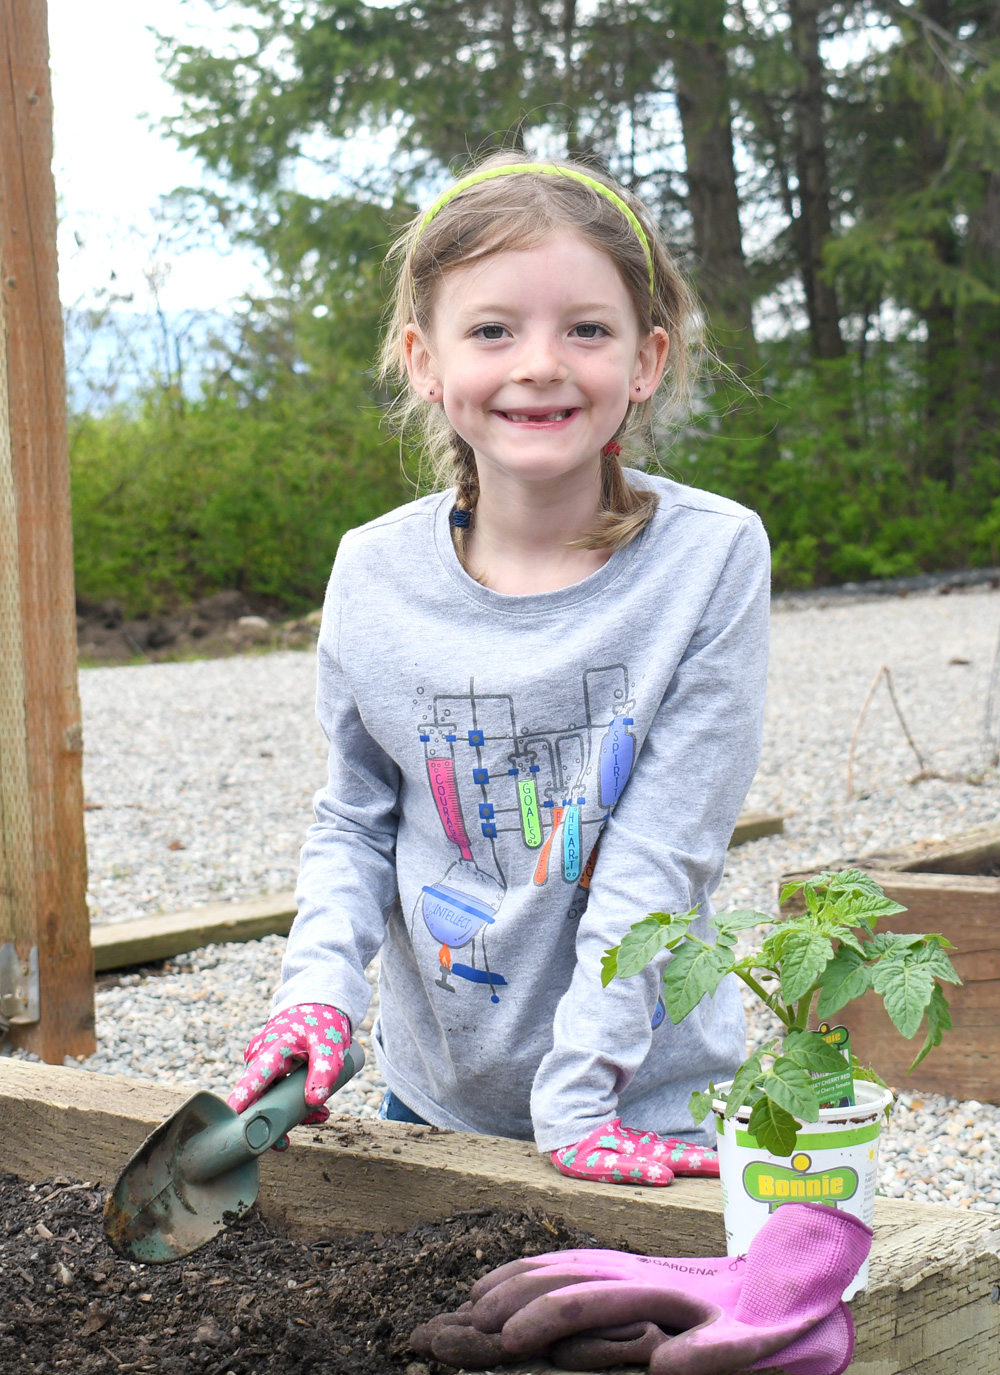 Tips for planting a garden with kids - Coeur d'Alene lifestyle in Idaho